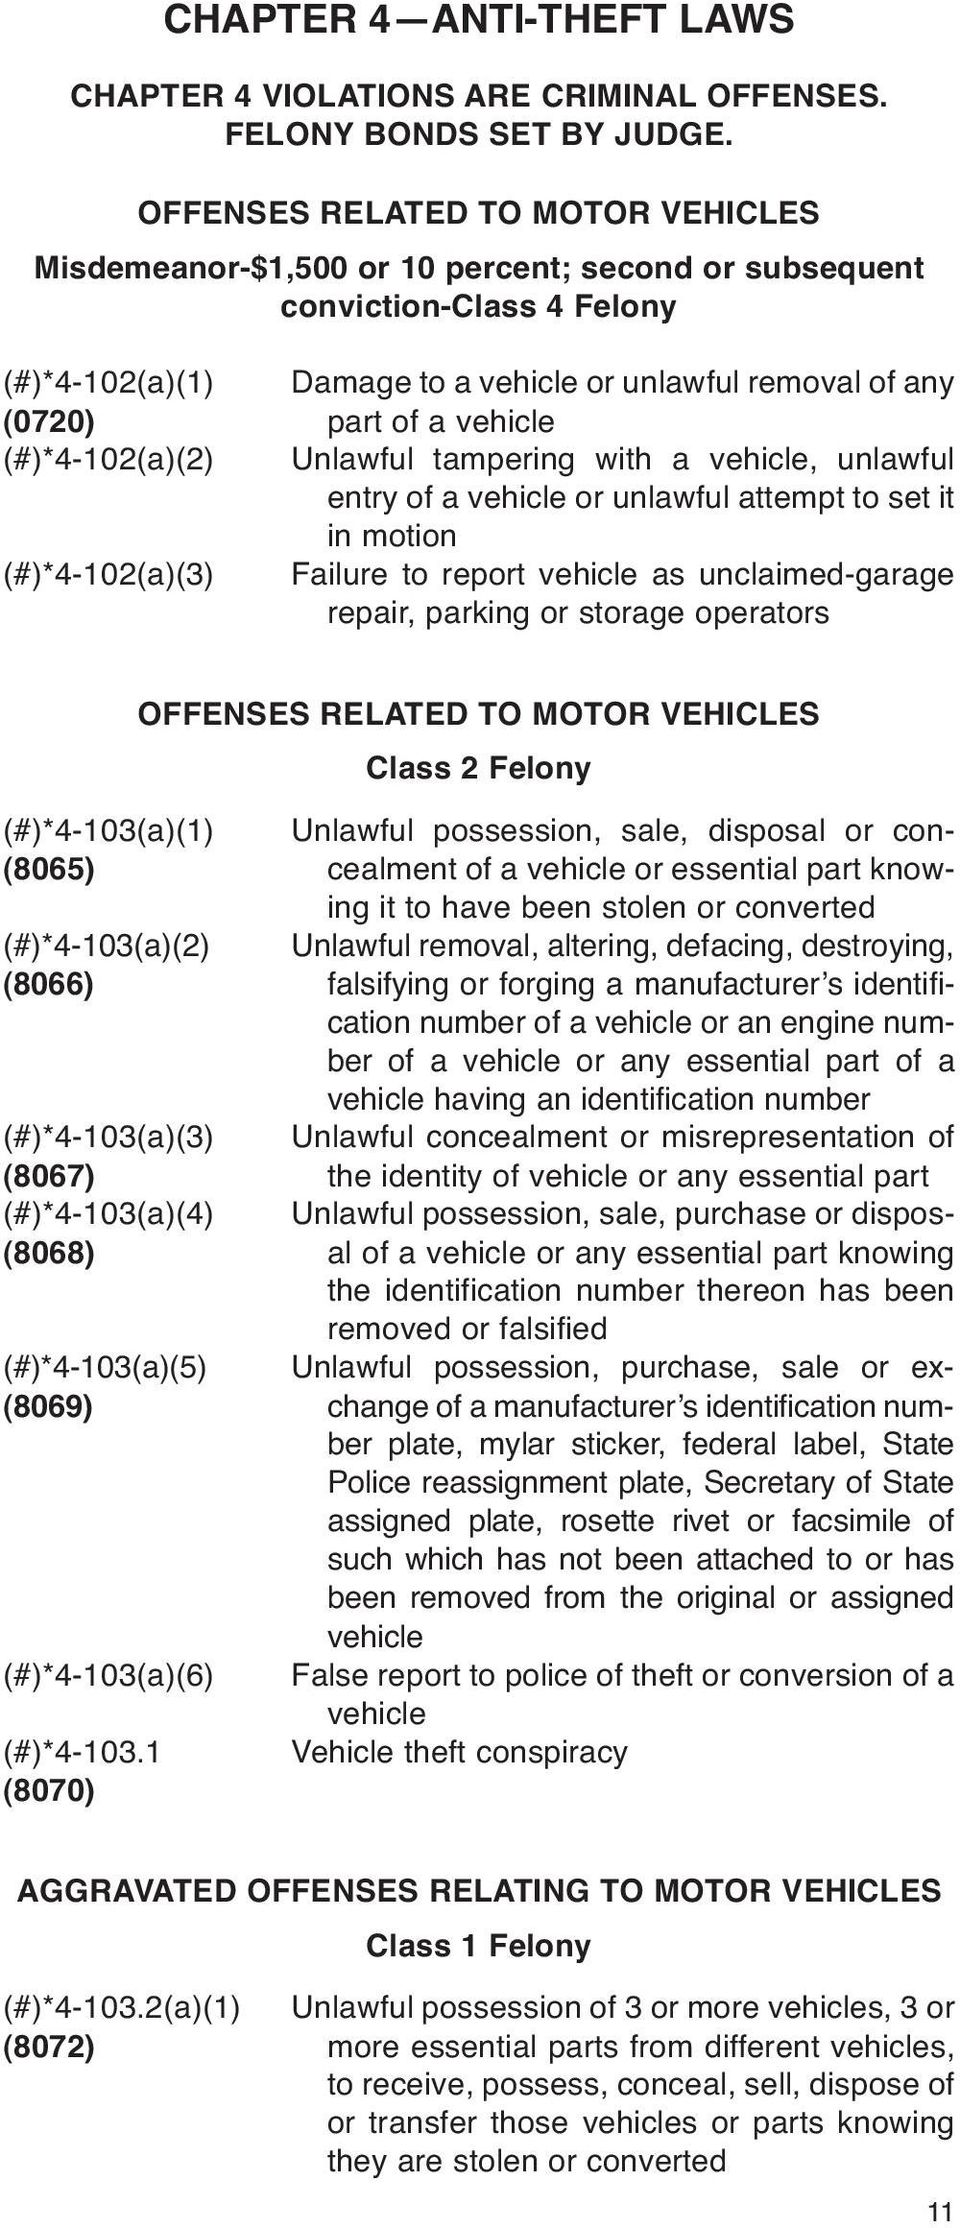 vehicle (#)*4-102(a)(2) Unlawful tampering with a vehicle, unlawful entry of a vehicle or unlawful attempt to set it in motion (#)*4-102(a)(3) Failure to report vehicle as unclaimed-garage repair,